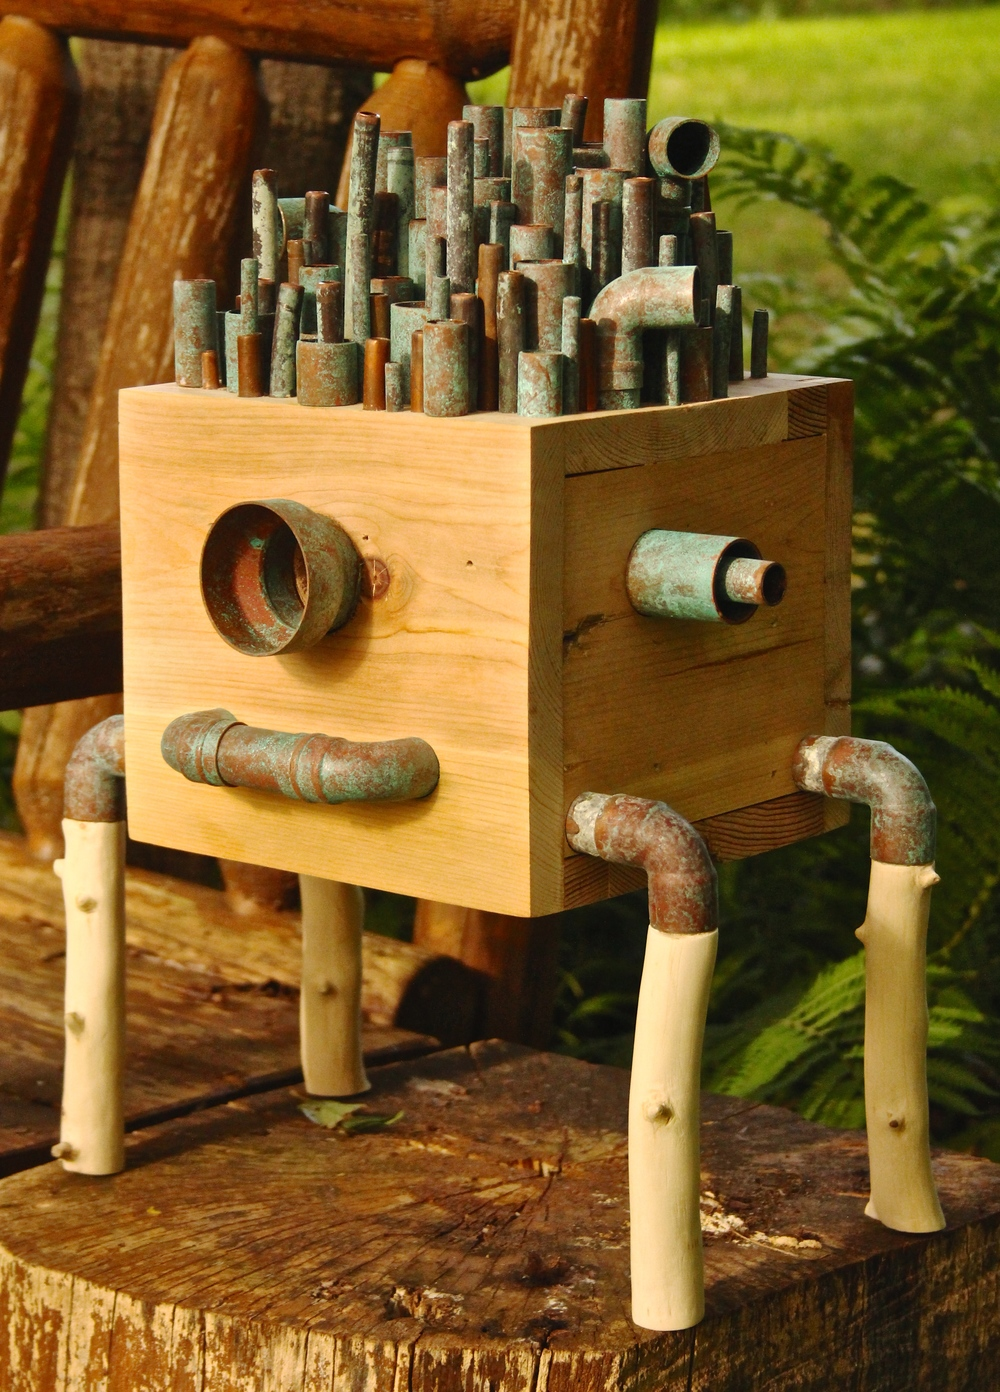 Copper Top was created from recycled wood, copper pipe and pieces and apple tree branches